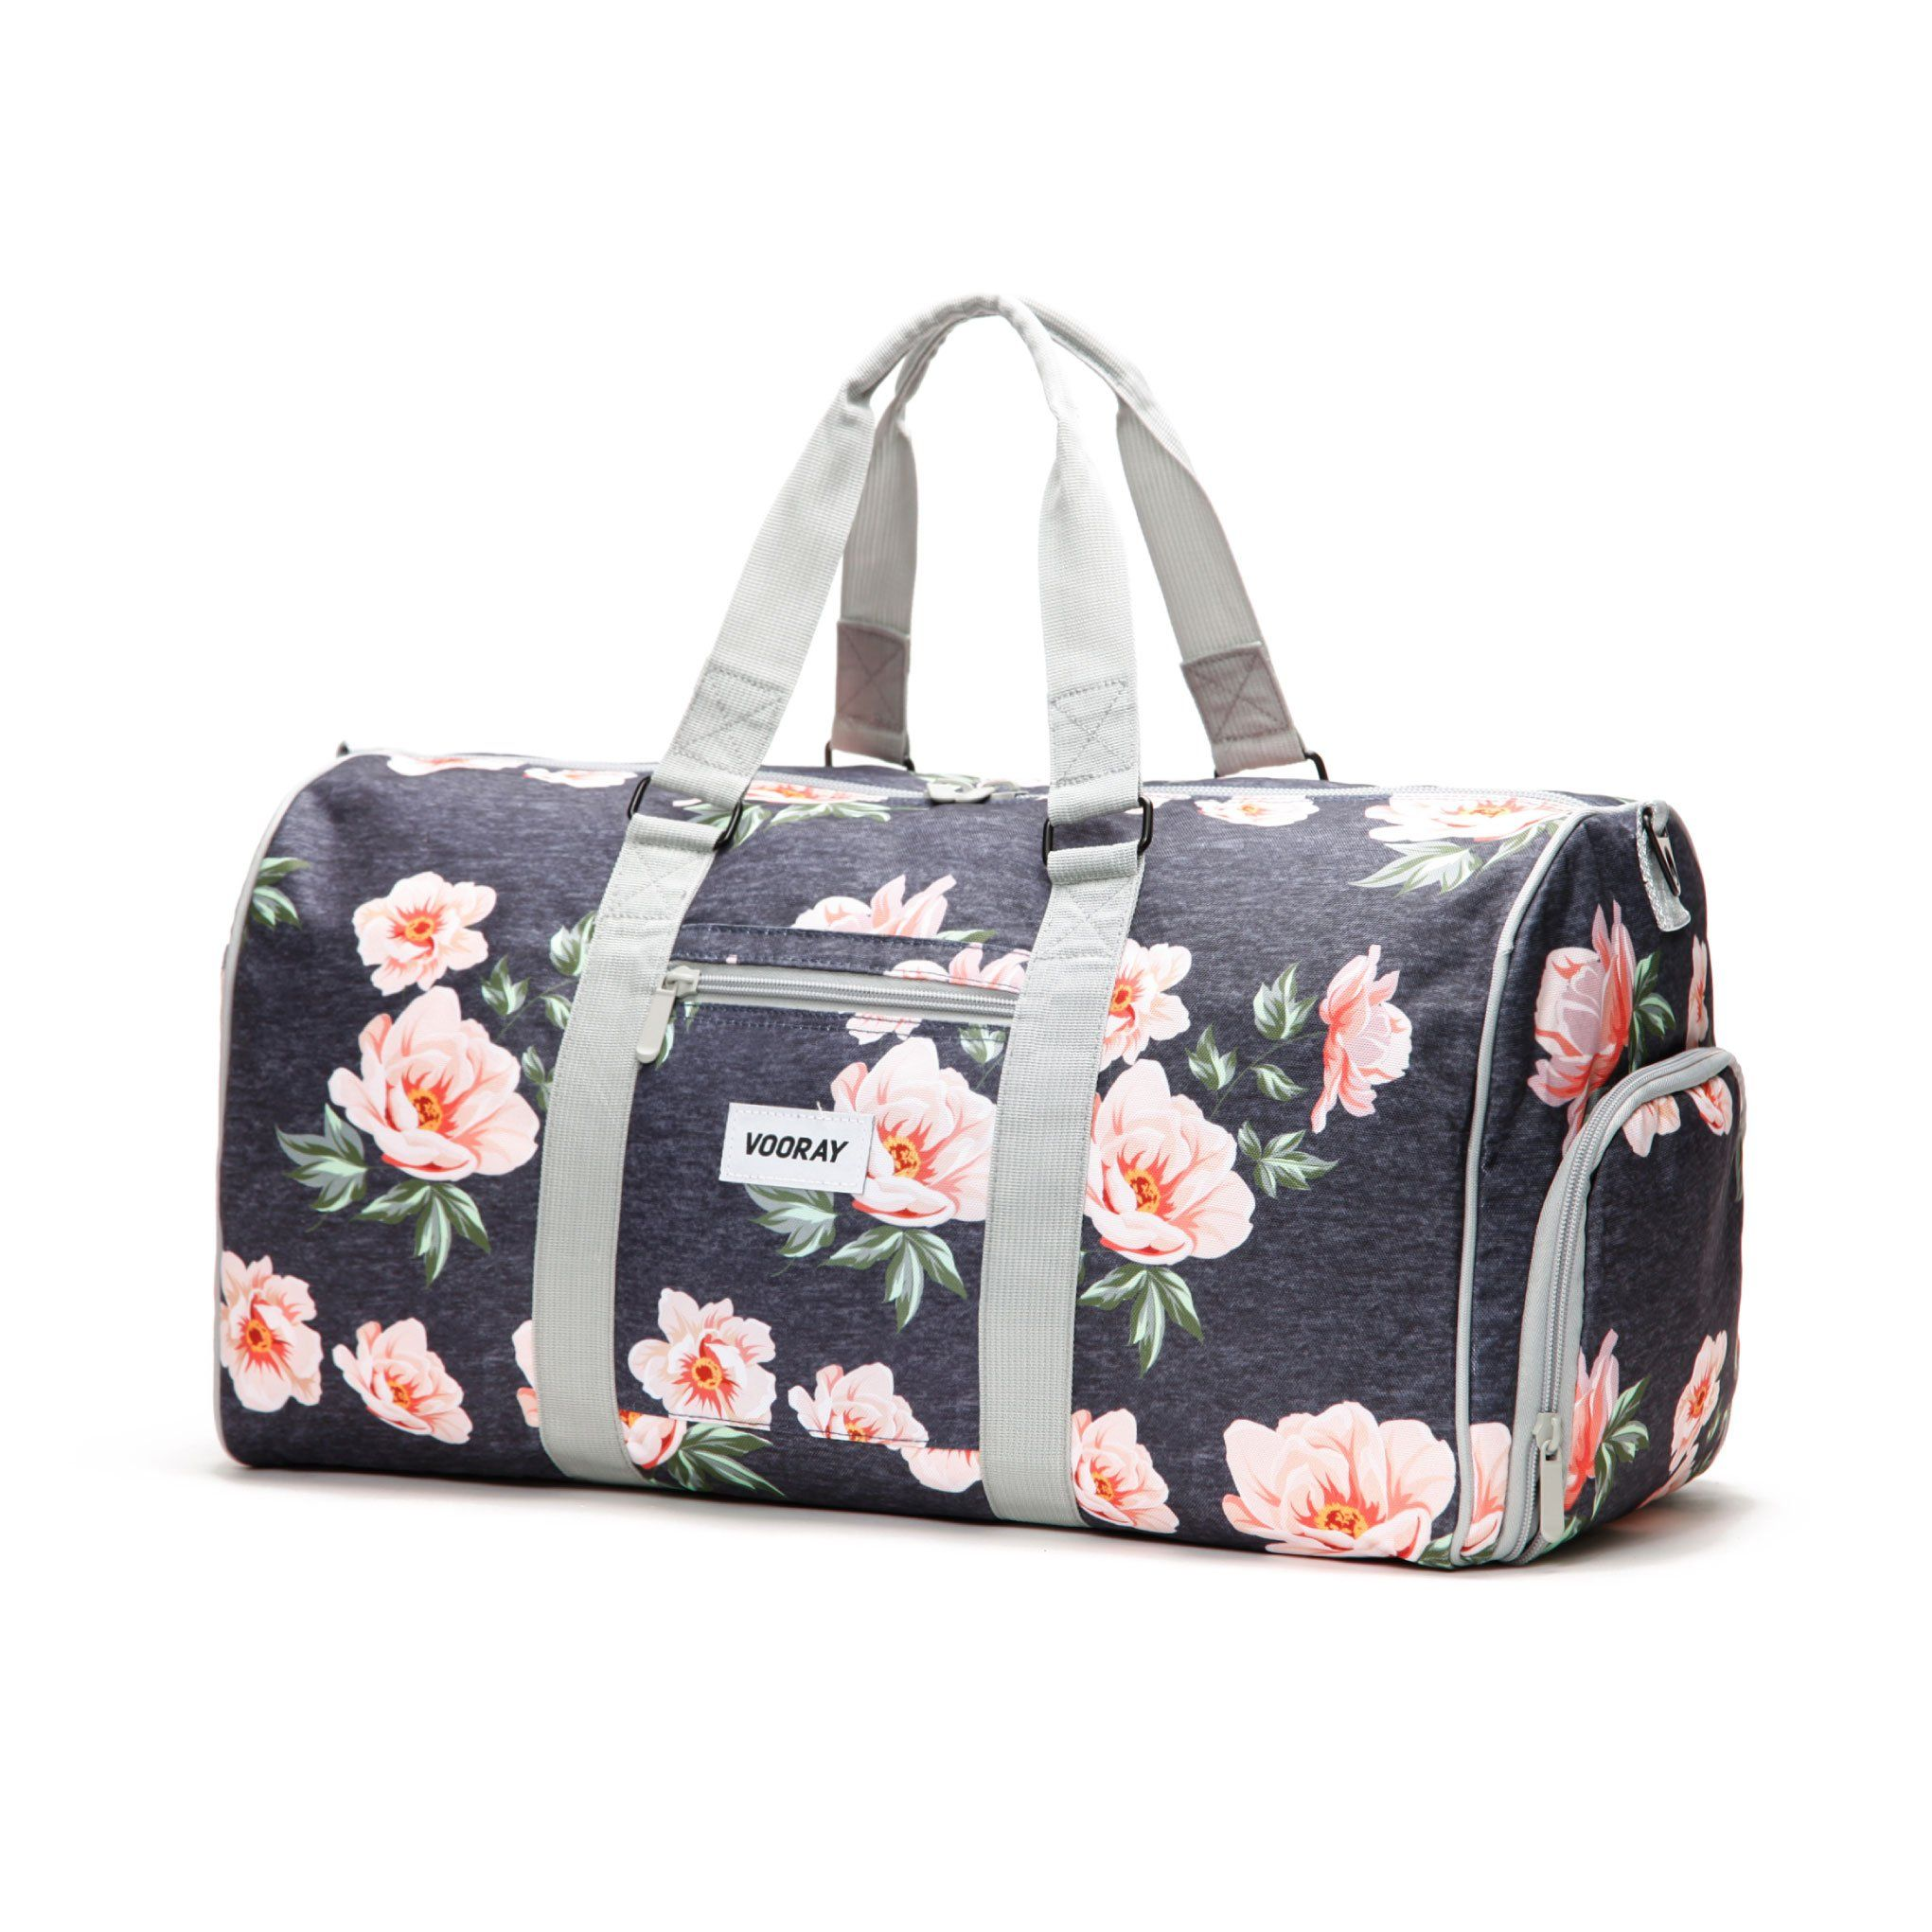 13e2276b483c Vooray specializes in bags and accessories for active lifestyles. Its core  product lines include gym bags